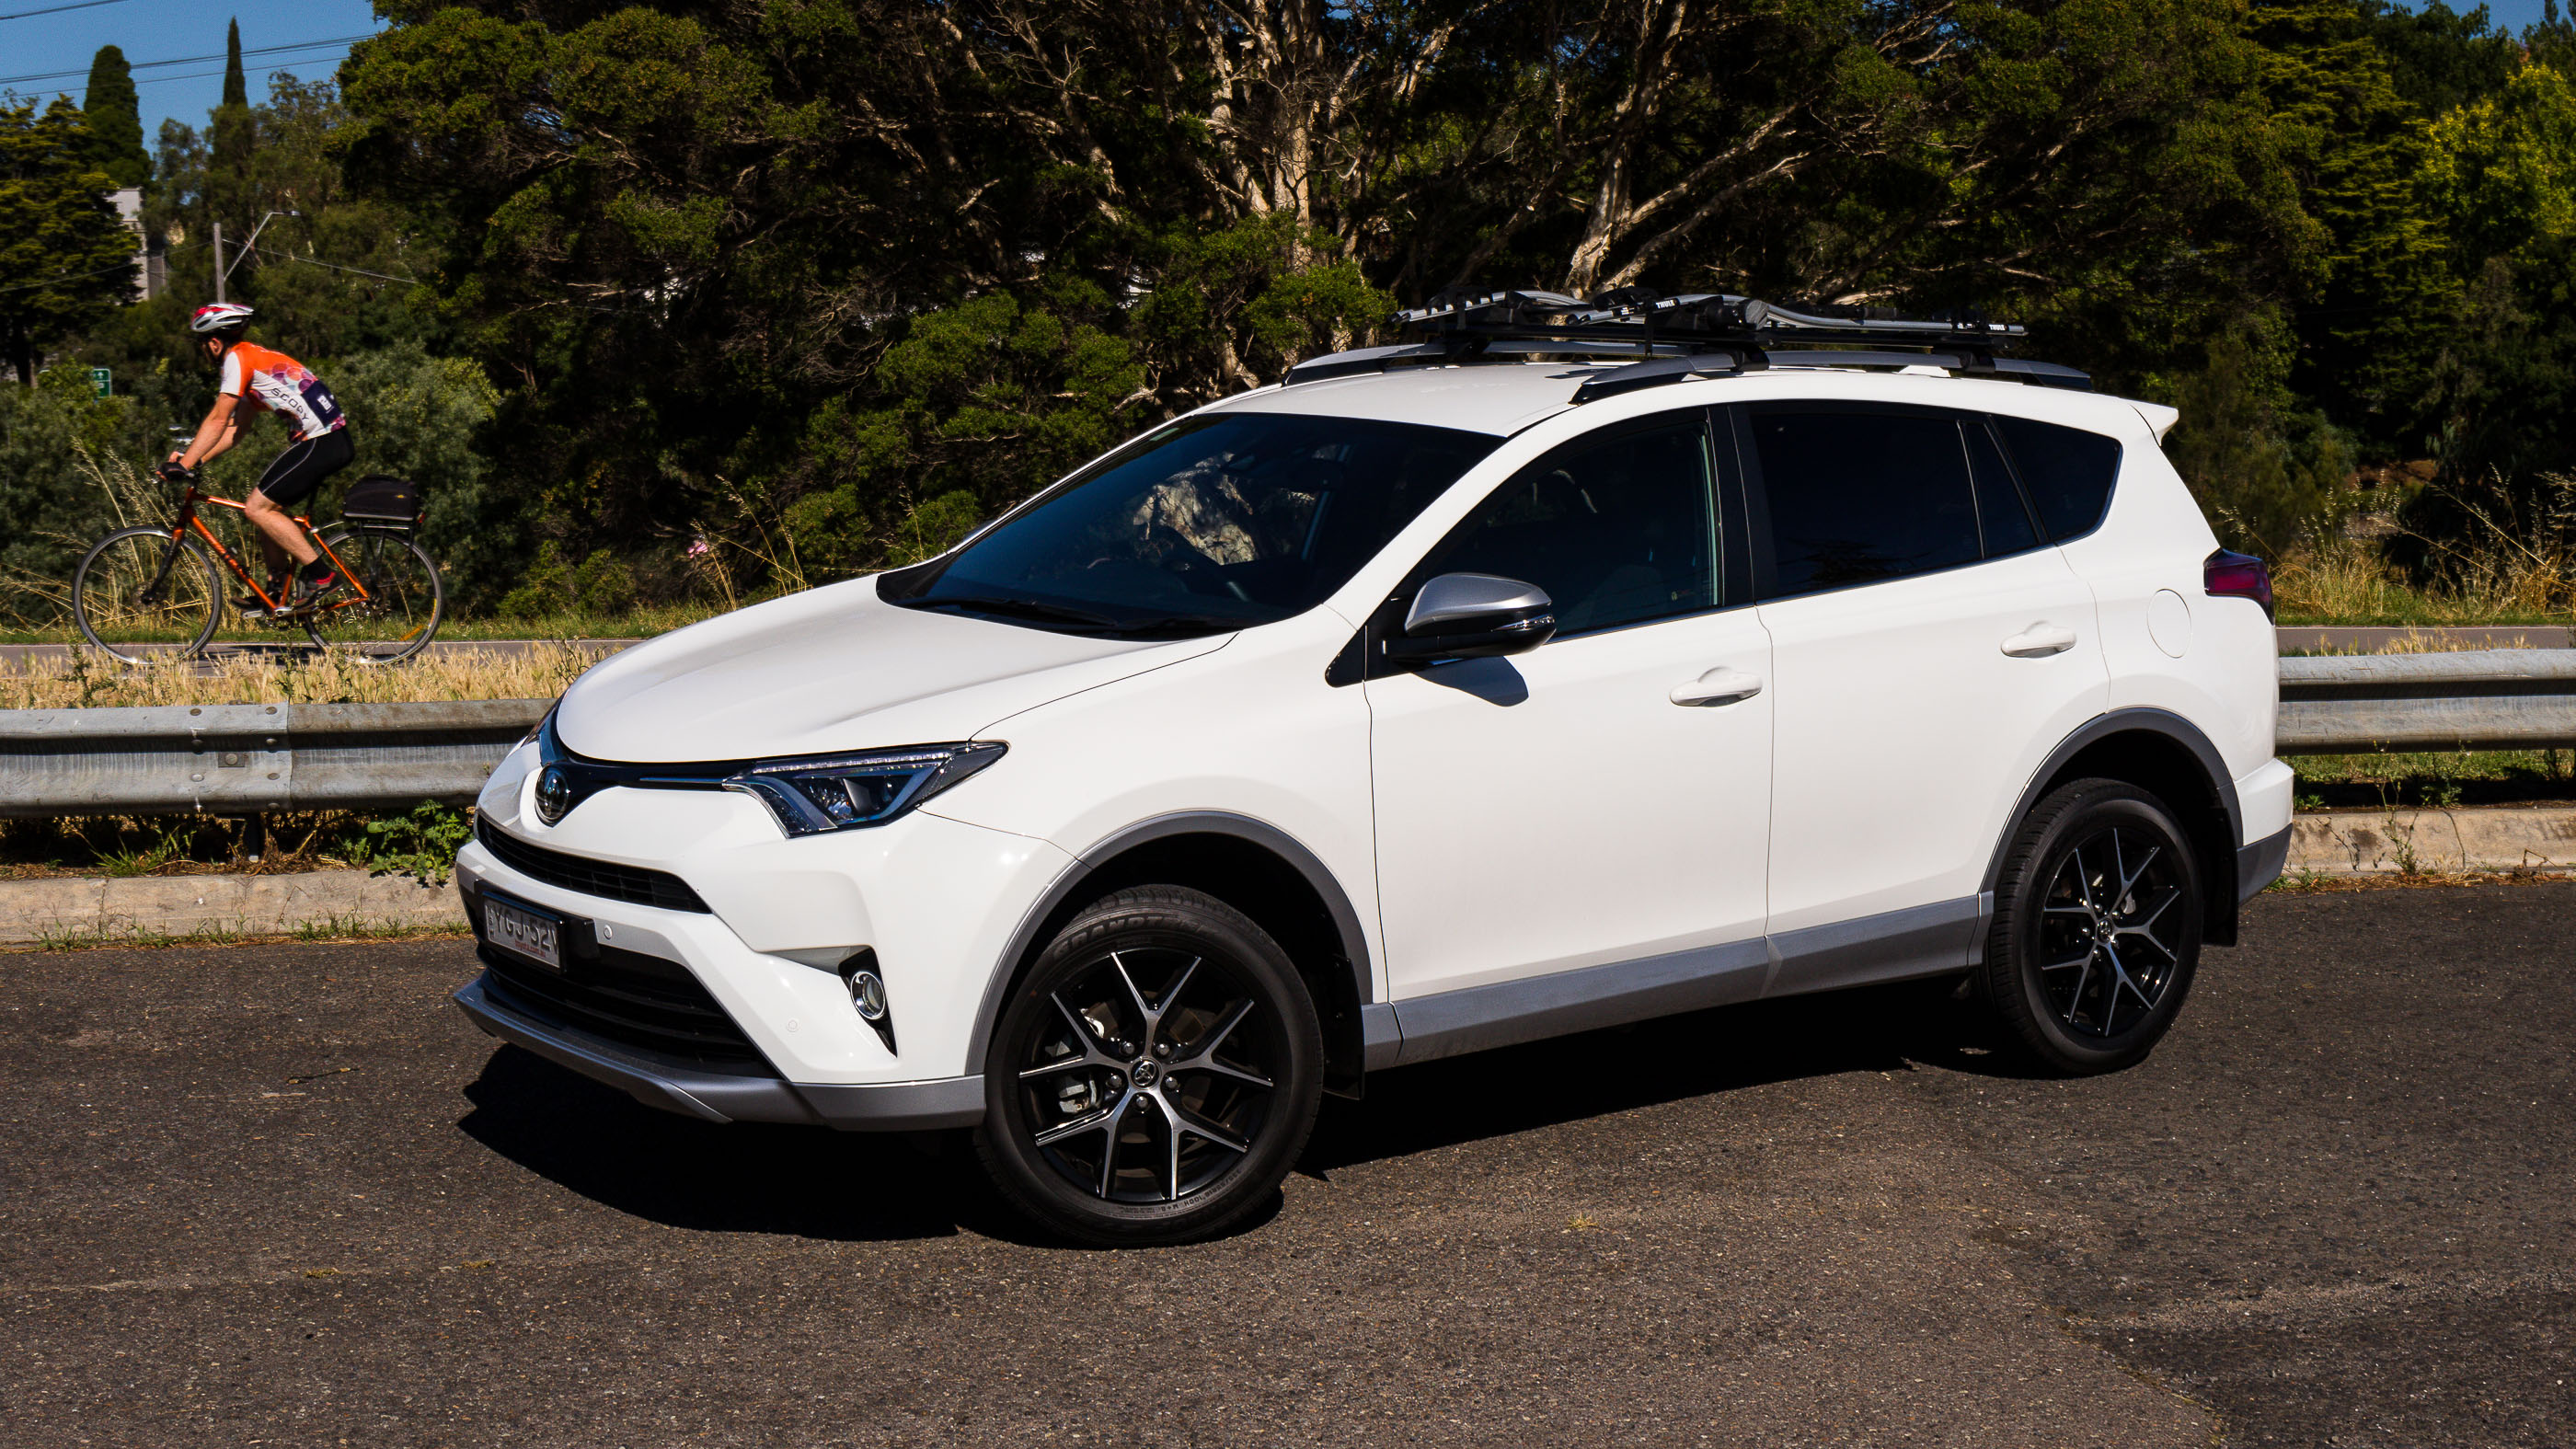 2017 toyota rav4 gxl review long term report three driver assistance and infotainment. Black Bedroom Furniture Sets. Home Design Ideas